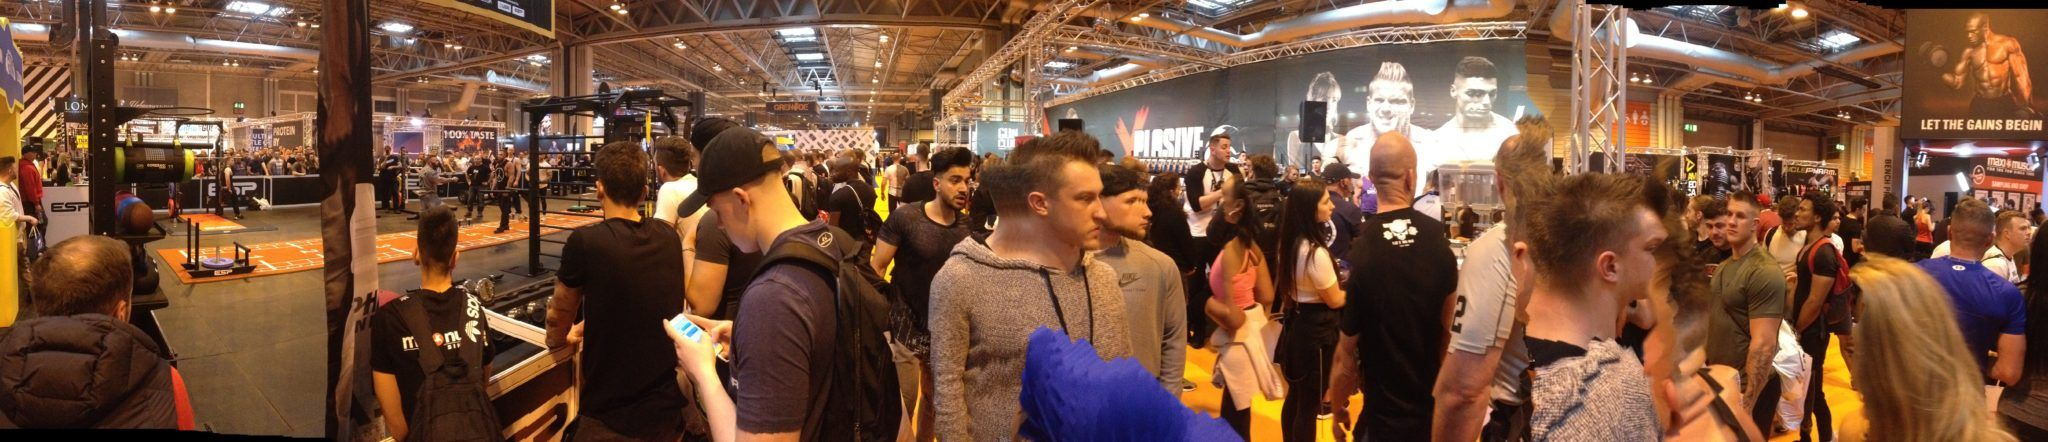 Get Motivated at the Bodypower health and fitness expo | Bodypower